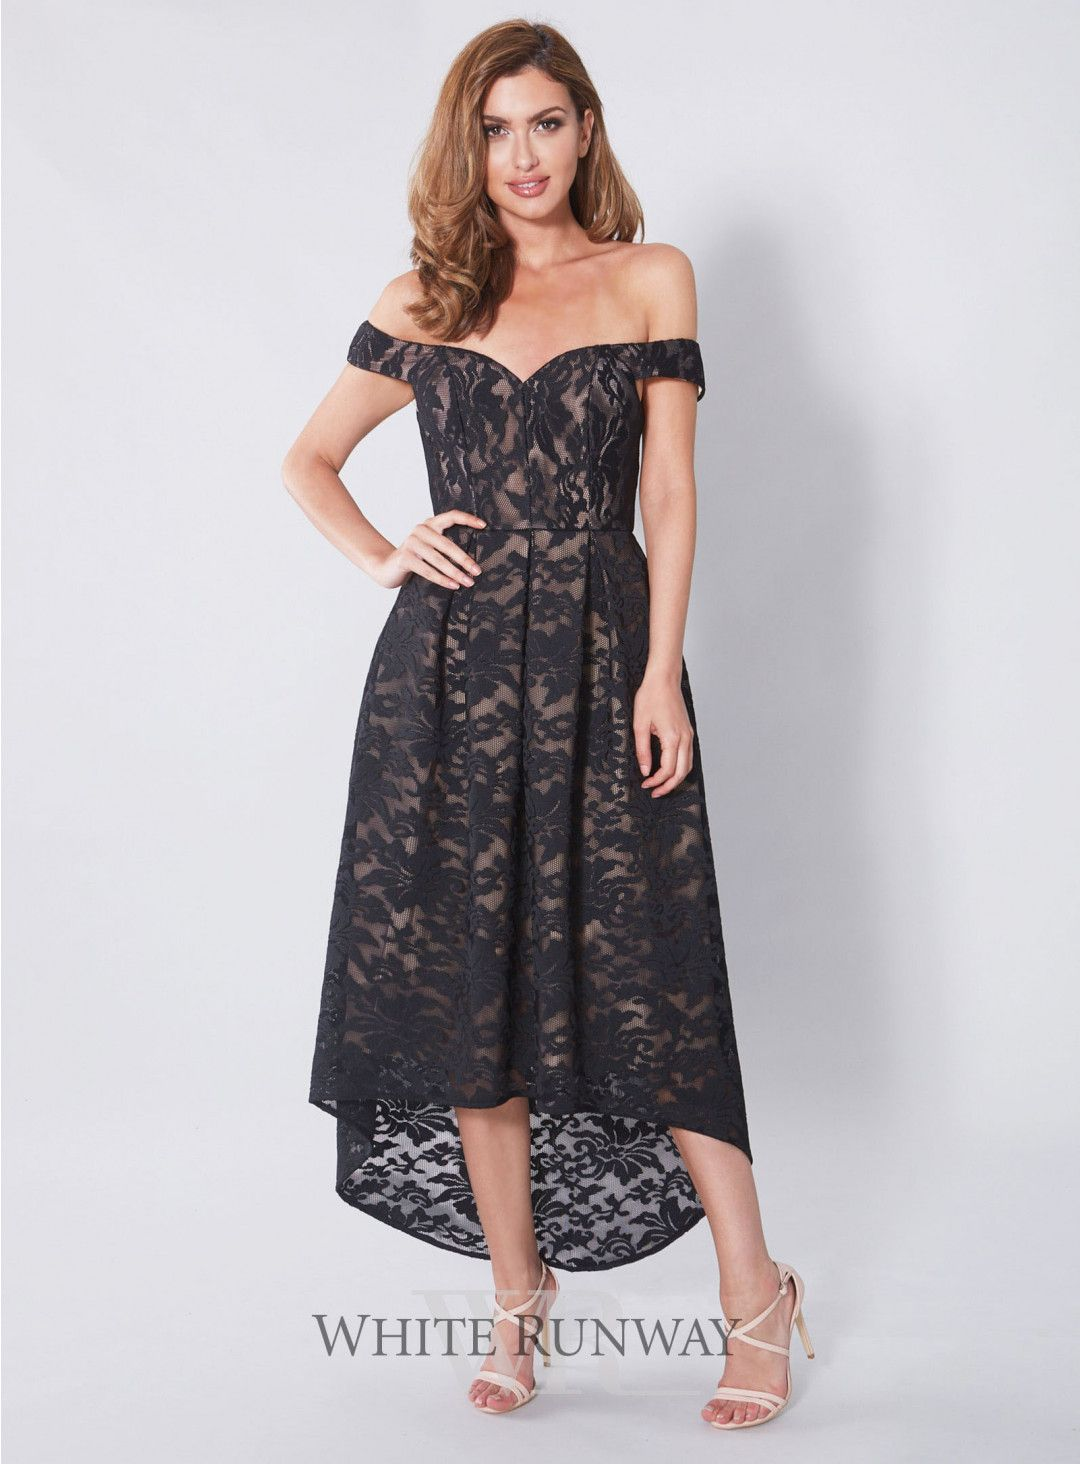 10d0e37da7 Mia Dress. A gorgeous midi length dress by Love Honor. A mesh floral  embroidered lace dress with a hi-lo pleated skirt and off shoulder  detailing.